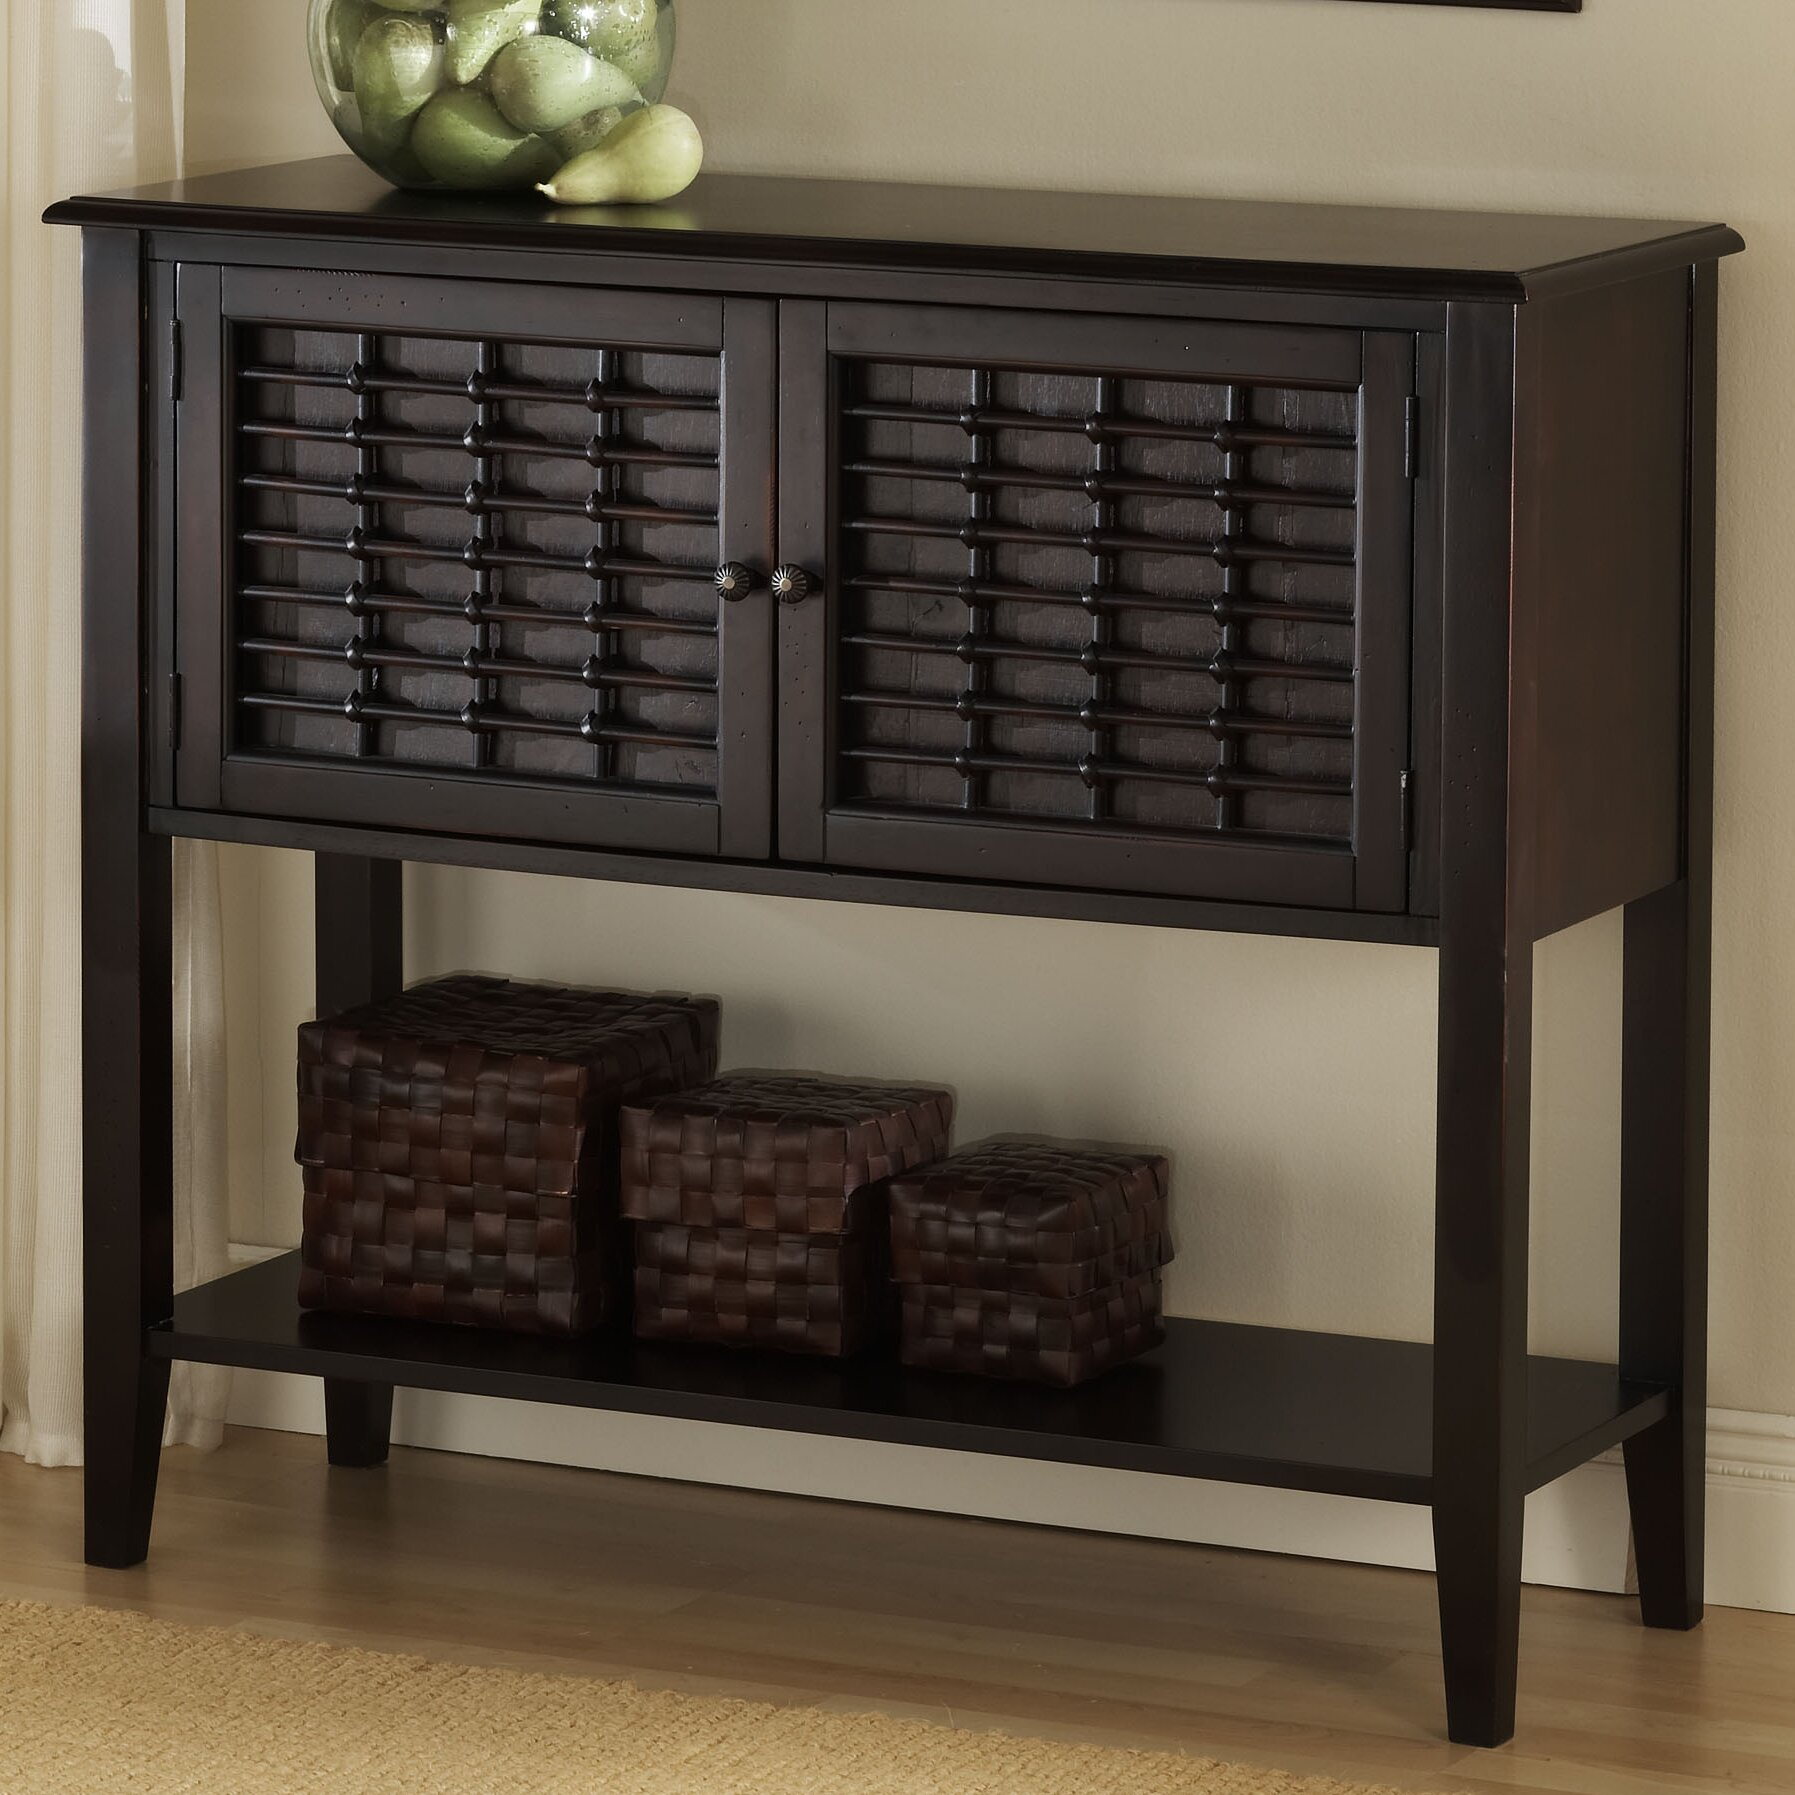 Hillsdale bayberry glenmary cabinet reviews wayfair for Furniture 2 day shipping